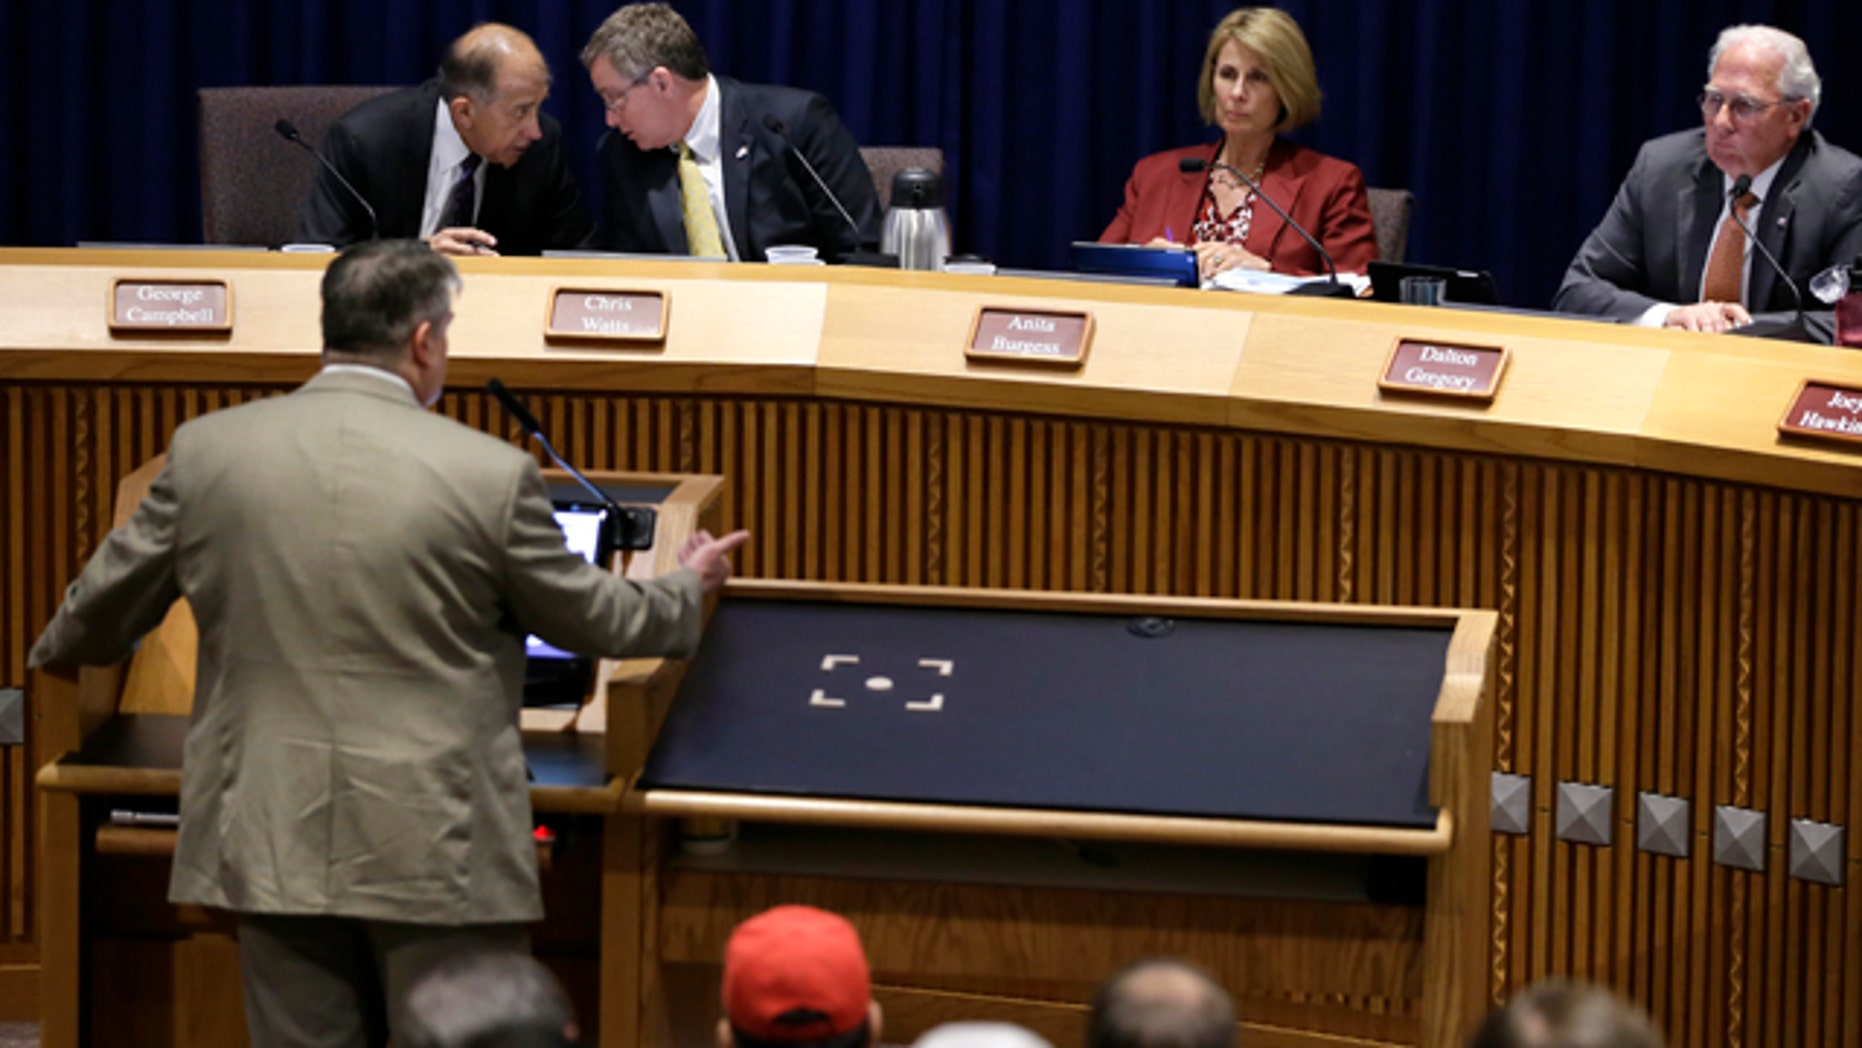 July 15, 2014: Denton, Texas Council member George Campbell, left rear, talks with Mayor Chris Watts as council members Anita Burgess and Dalton Gregory right, listen to former Texas Railroad Commission executive director John Tintara, at lectern, speak at a public hearing at City Hall. (AP Photo/Tony Gutierrez)